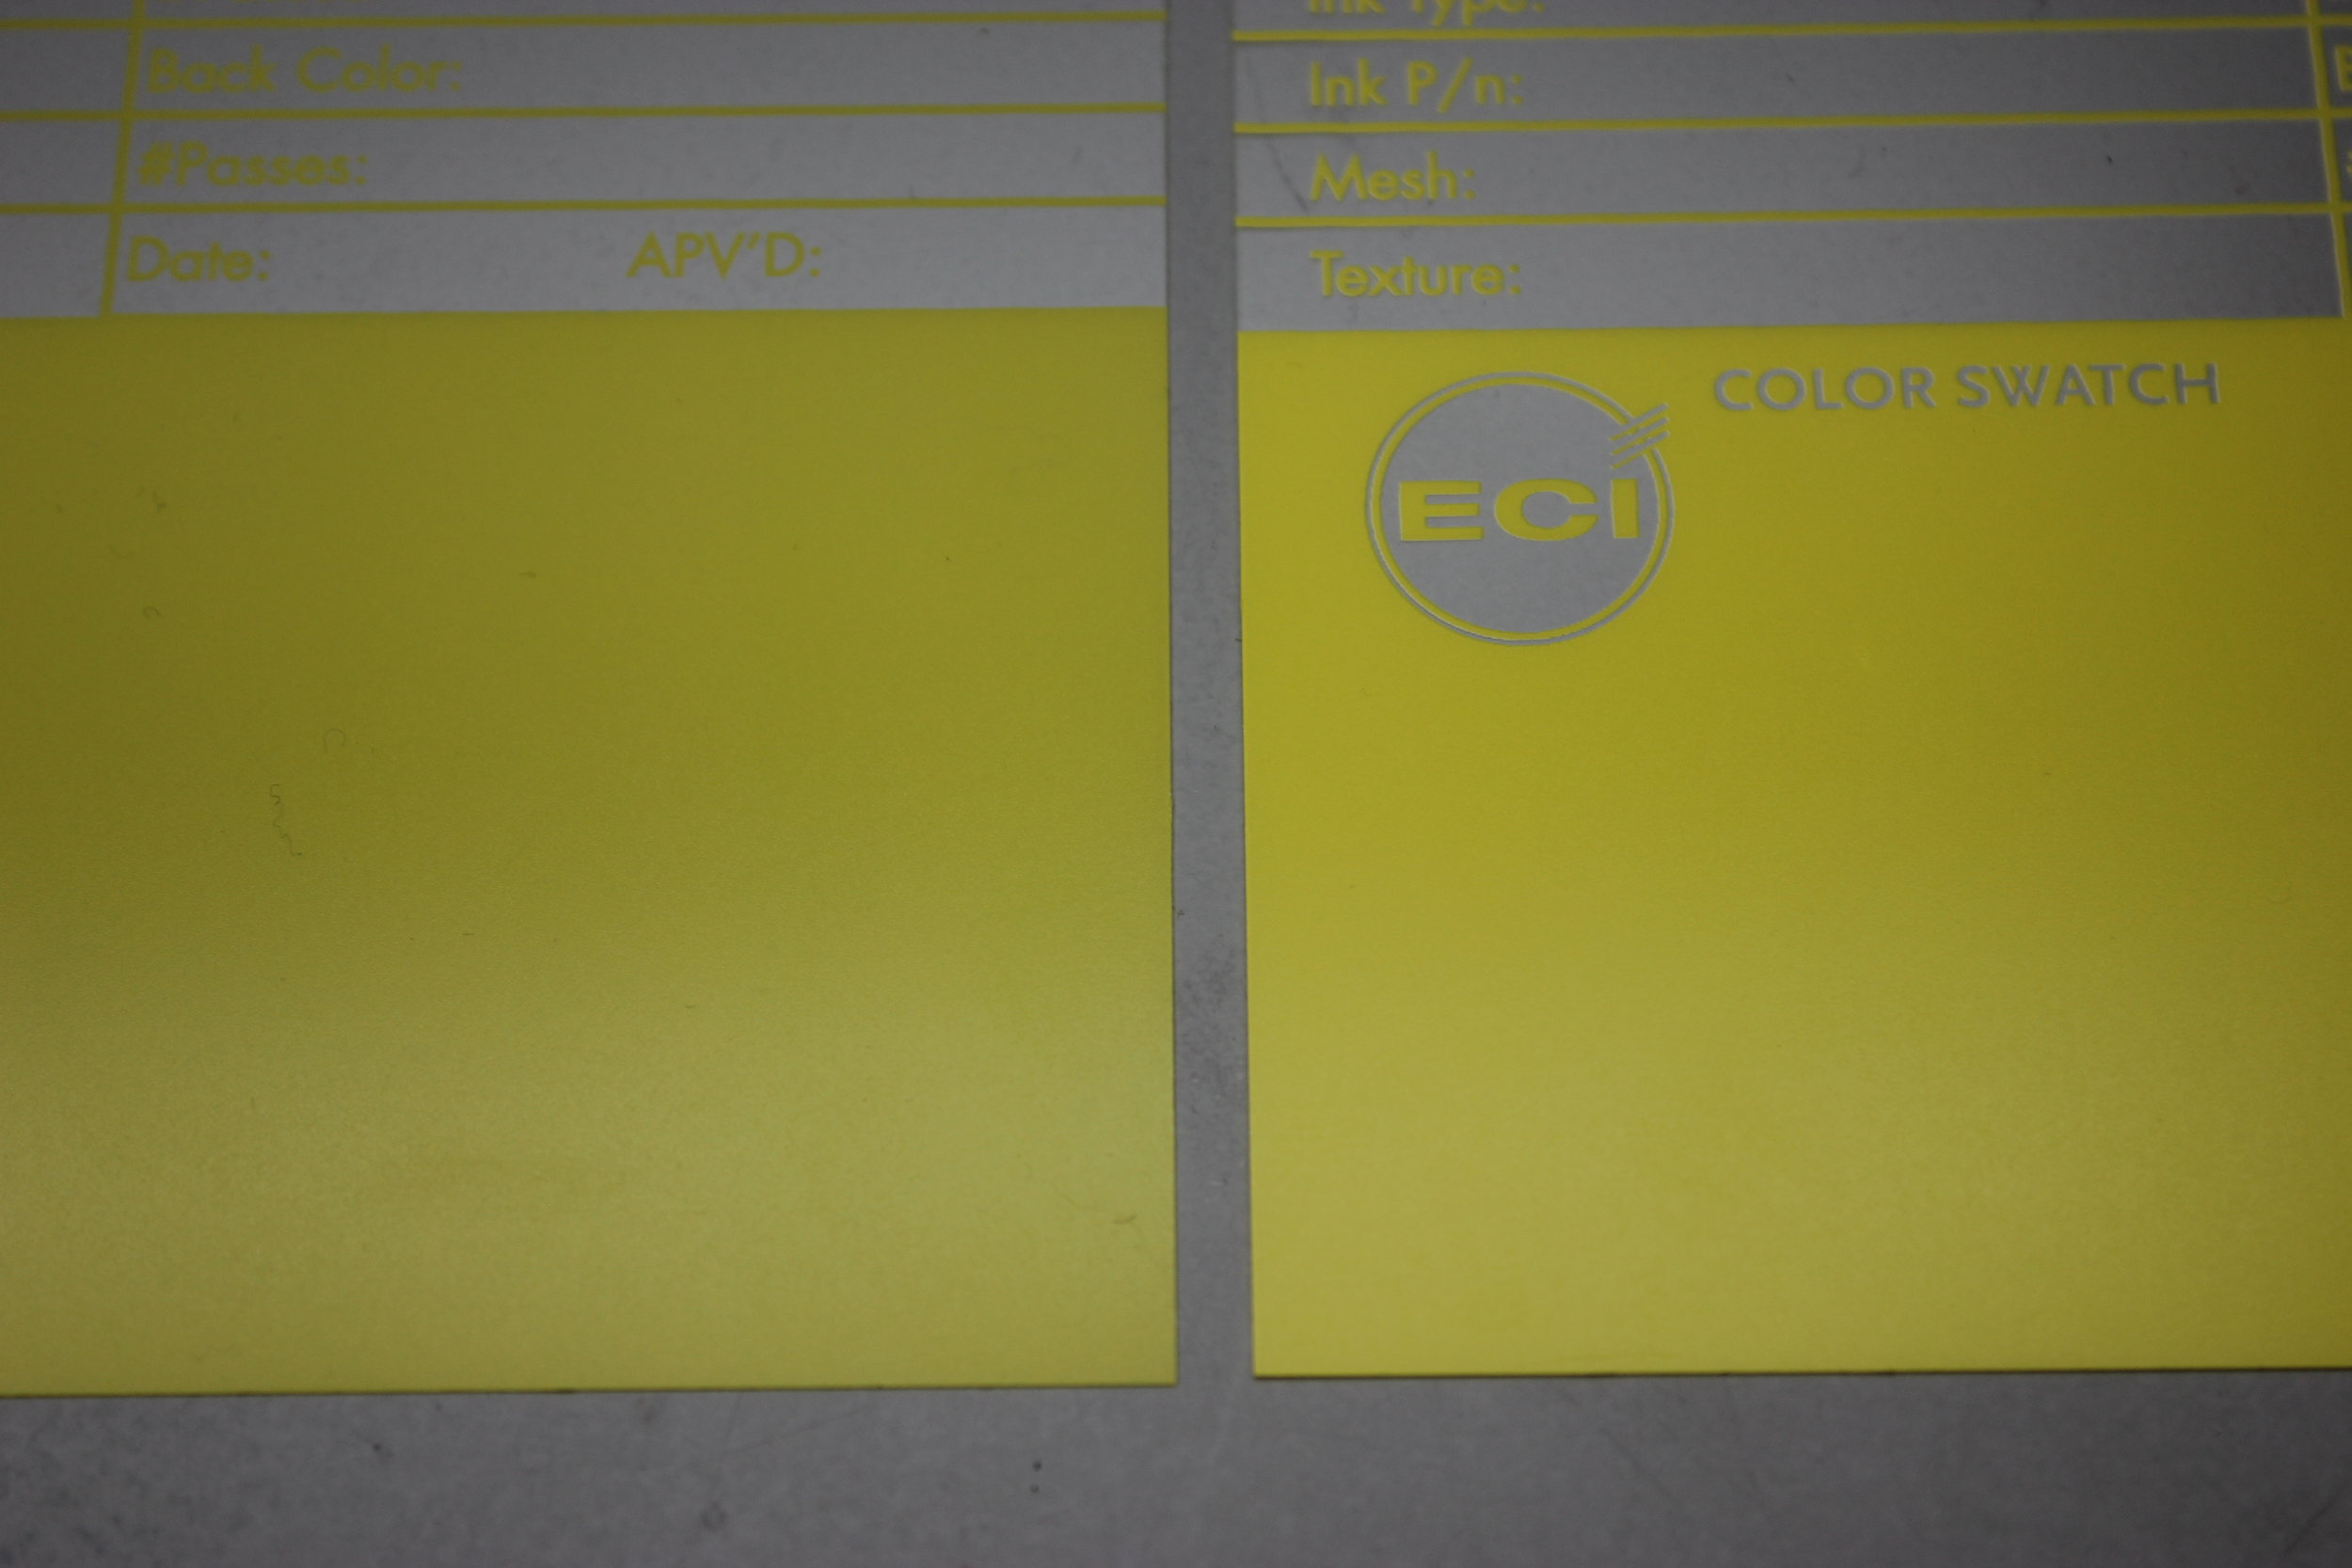 Both of the color swatches shown above show the same color. However, the one on the right has a white back flood while the swatch on the left does not. Notice that the swatch on the left is slightly transparent because the ink has no backing to it. The colors themselves look drastically different as the swatch with the white backer flood looks more vibrant.